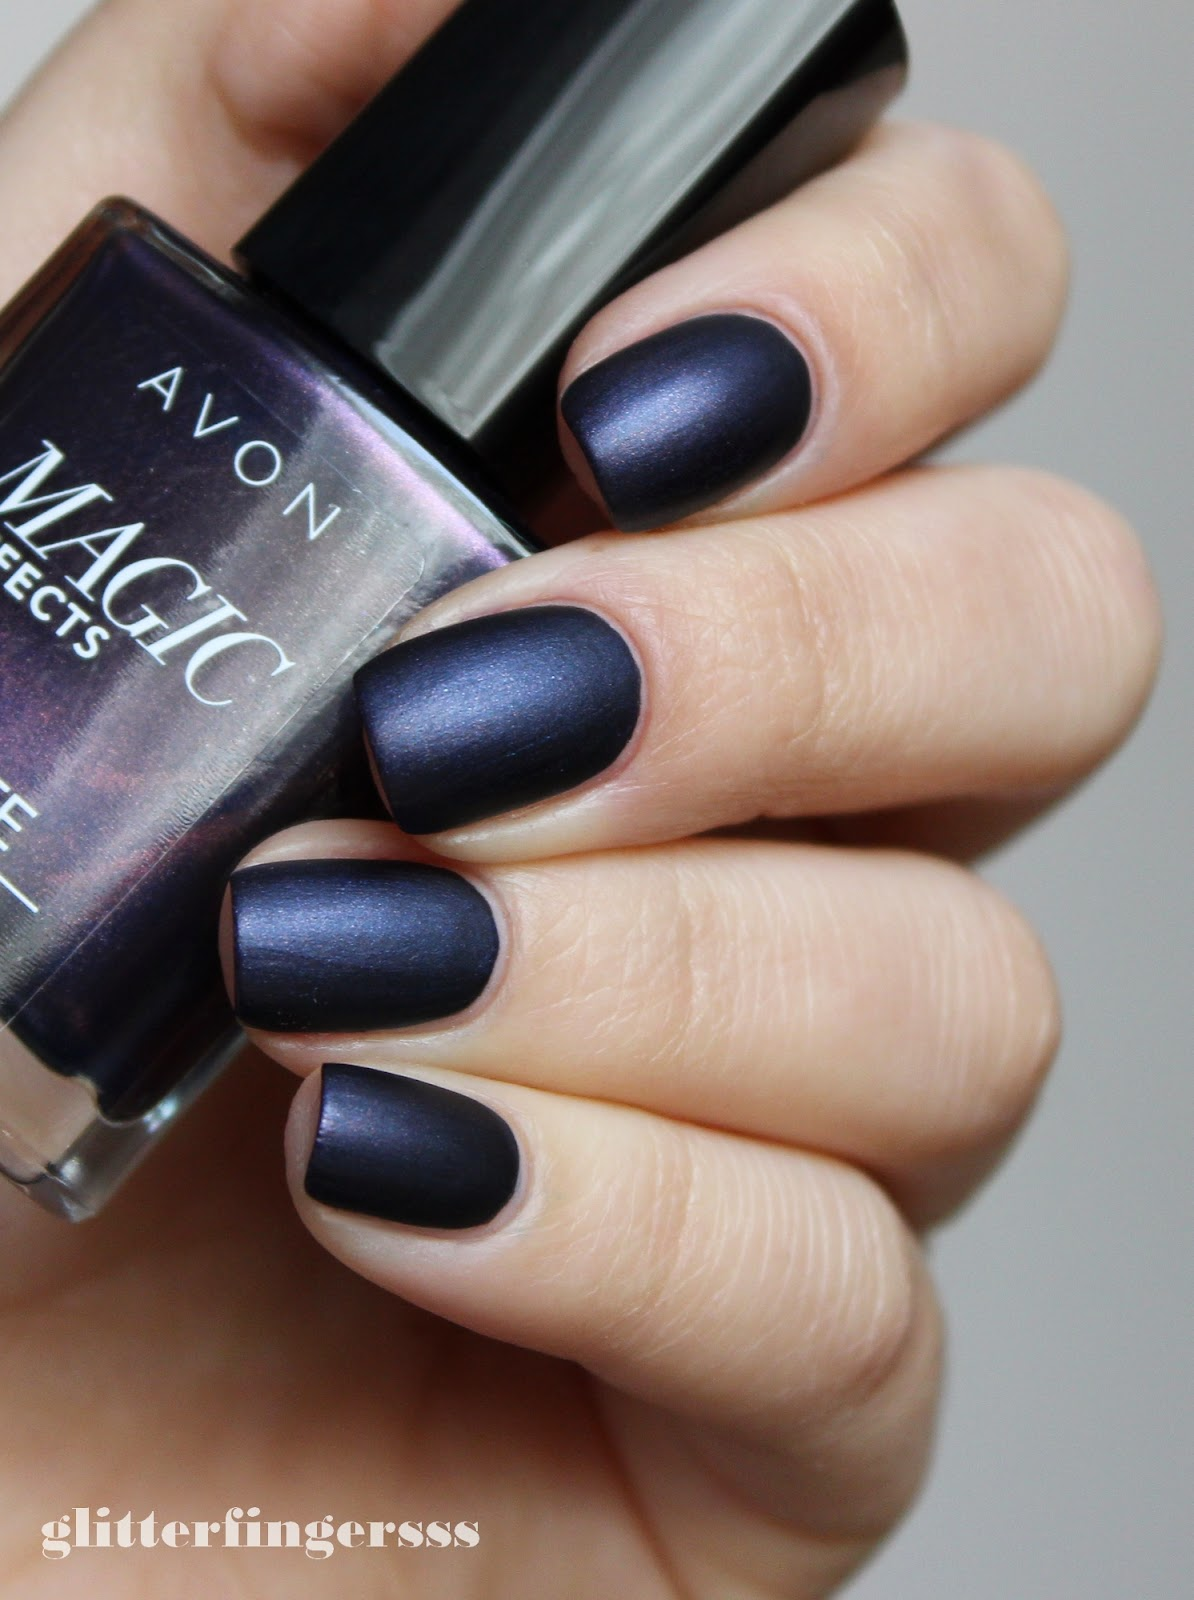 SWATCH | Avon Magic Effects \'Matte\' - Inky Blue ~ Glitterfingersss ...